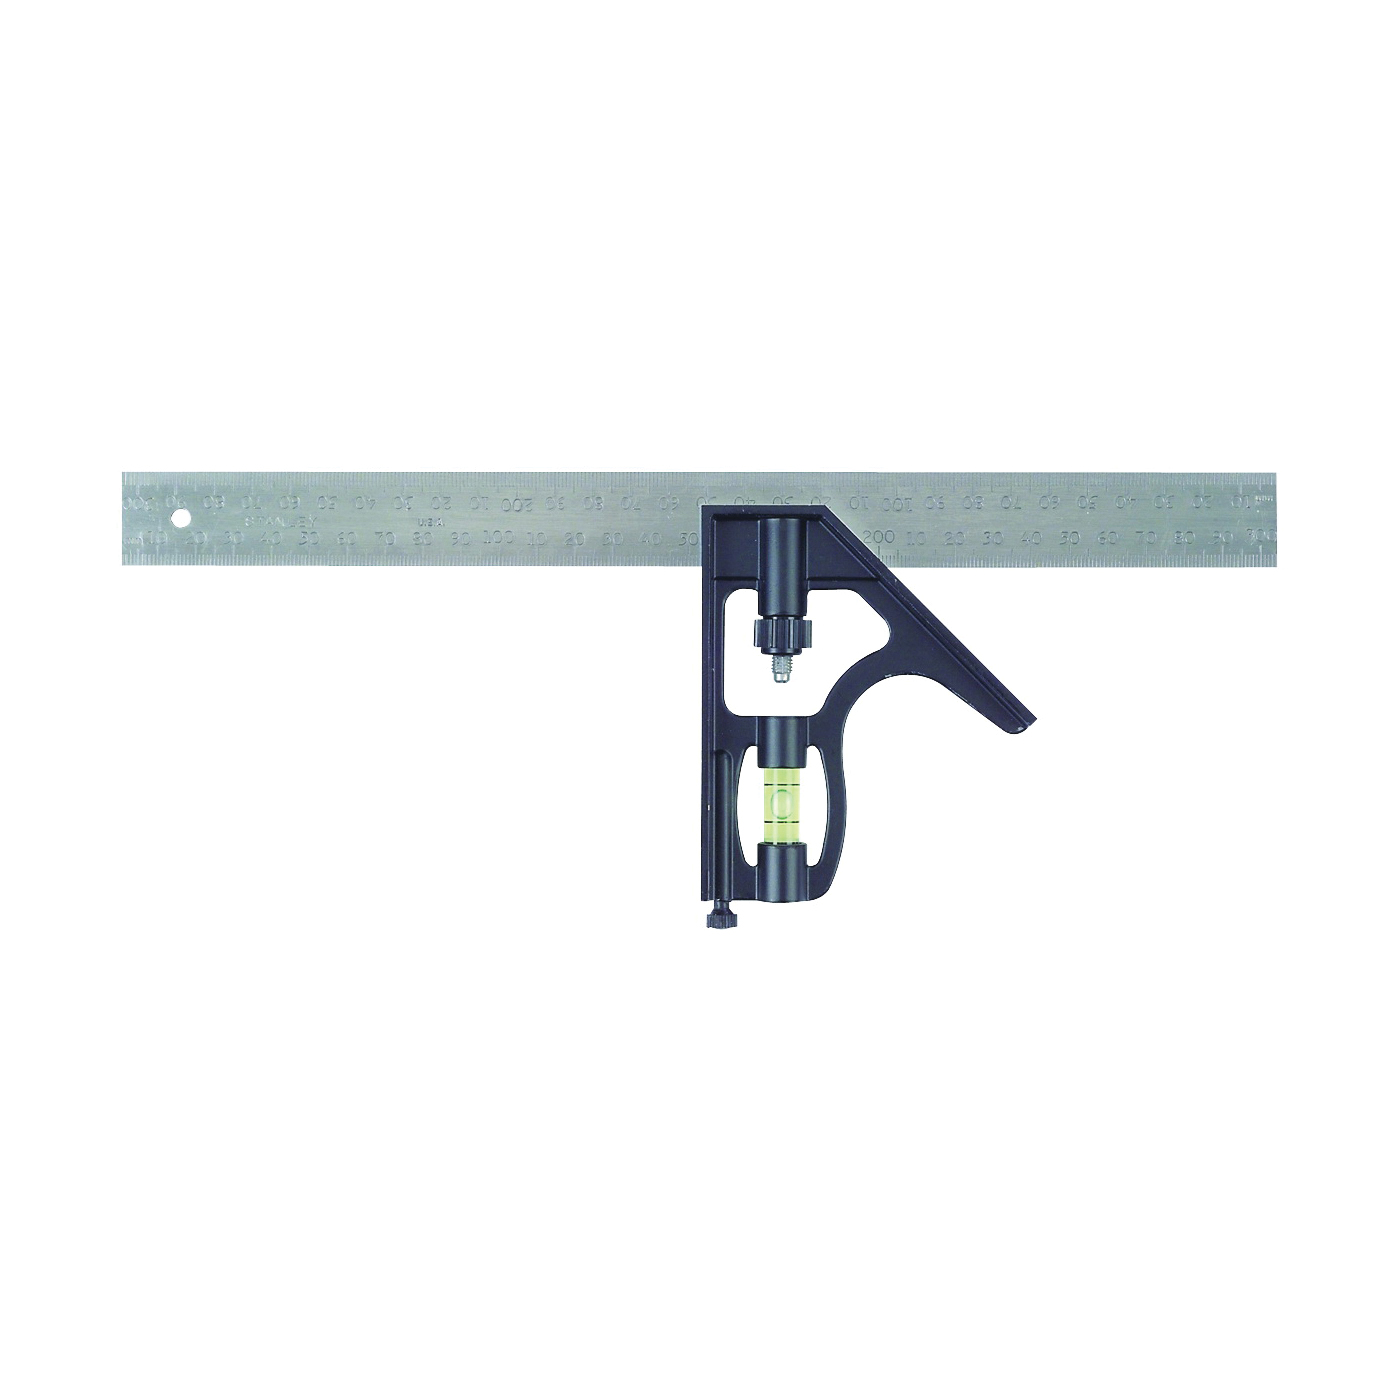 Picture of STANLEY 46-222 Combination Square, 1 in W Blade, 12 in L Blade, SAE Graduation